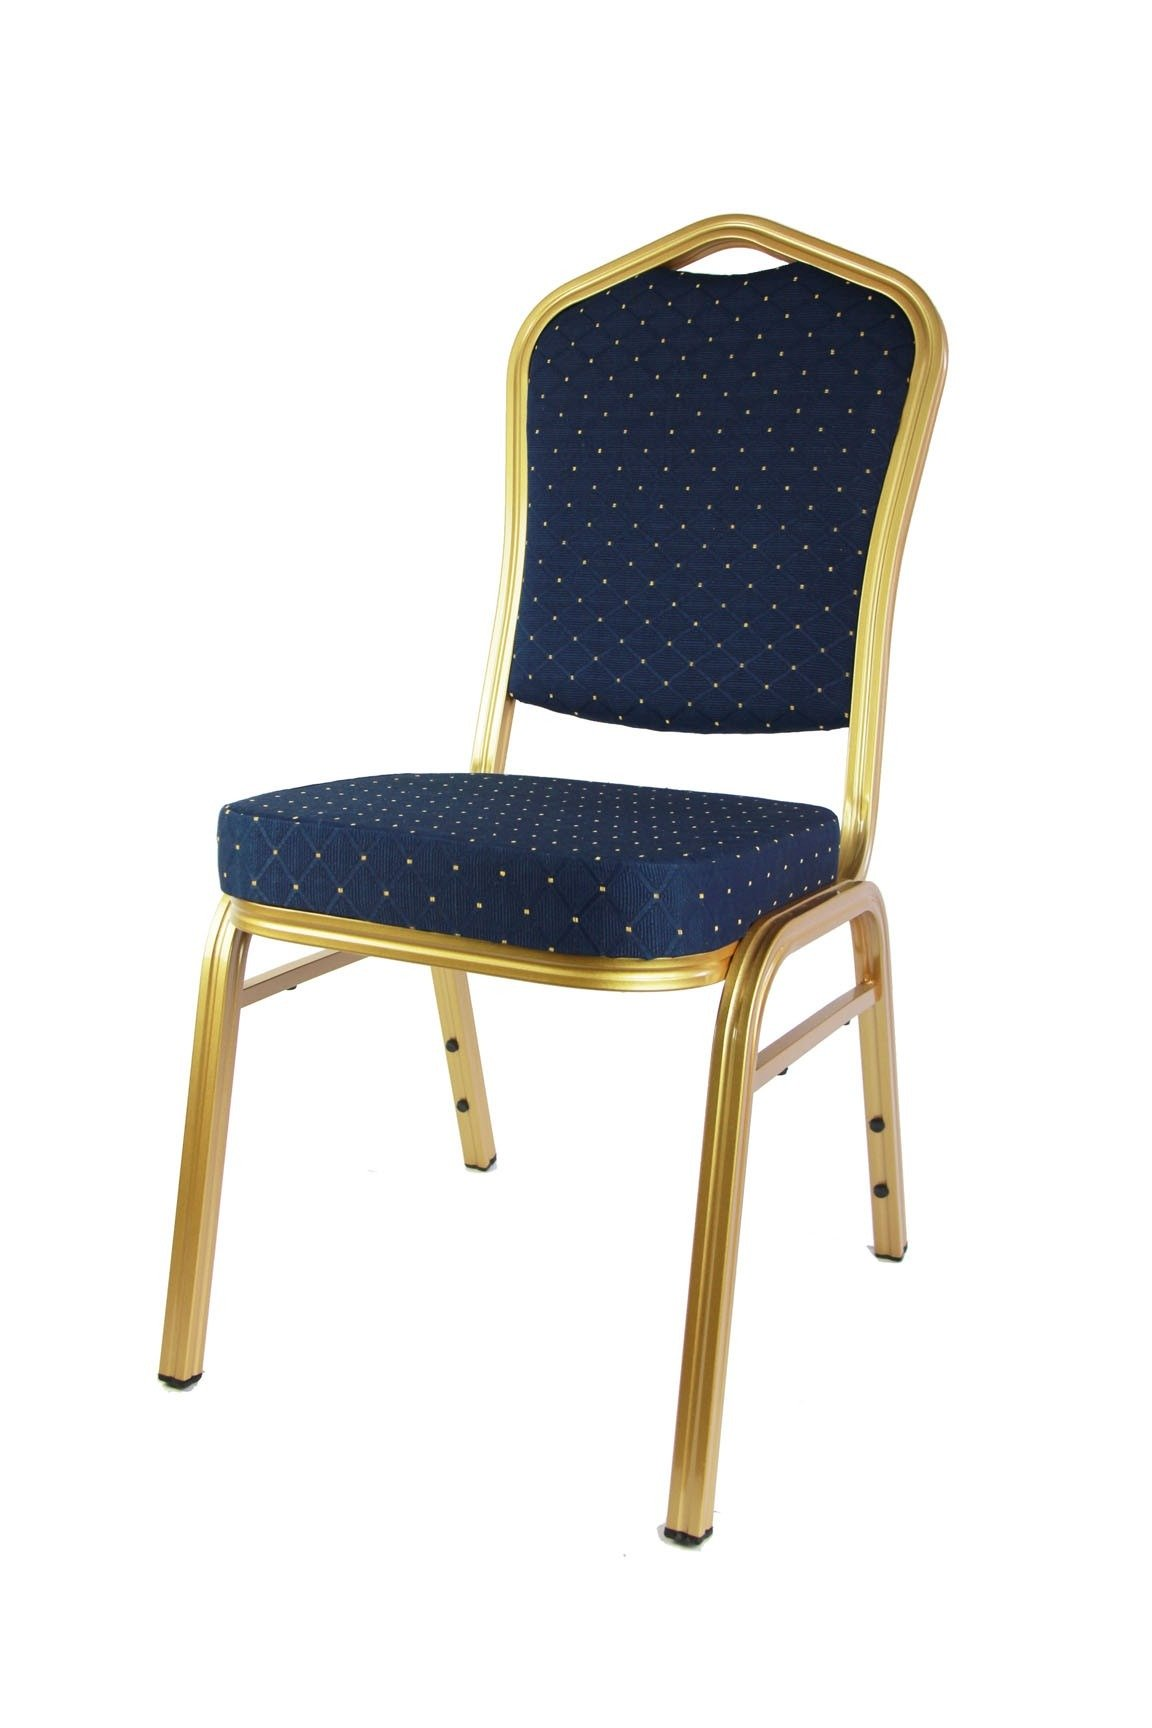 Brand new banquet chairs